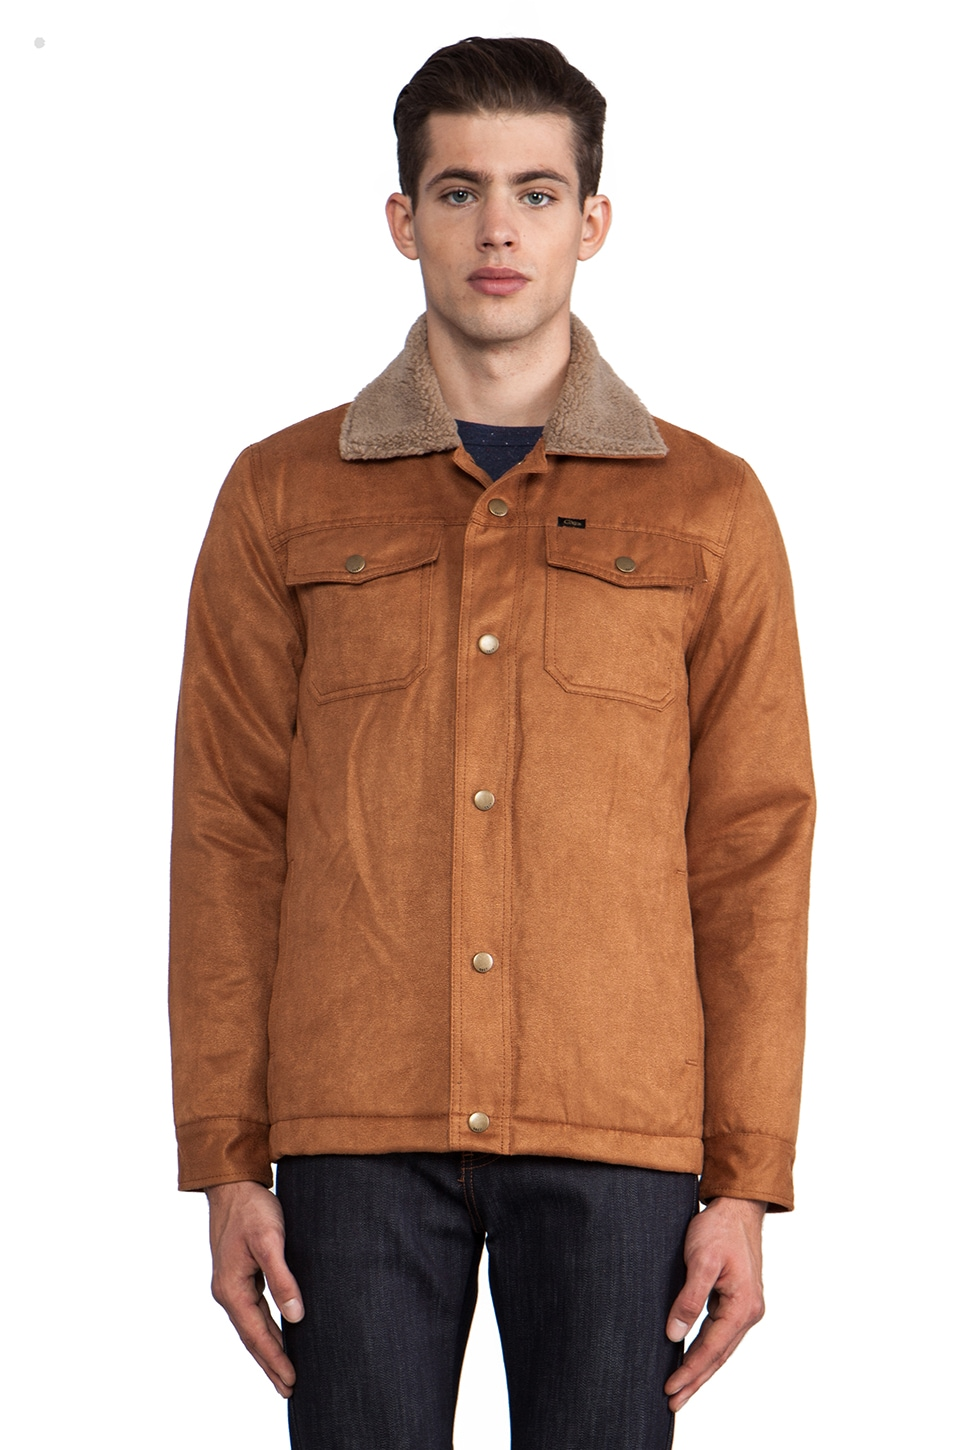 Obey Billy Jacket w/ Faux Shearling Trim in Caramel